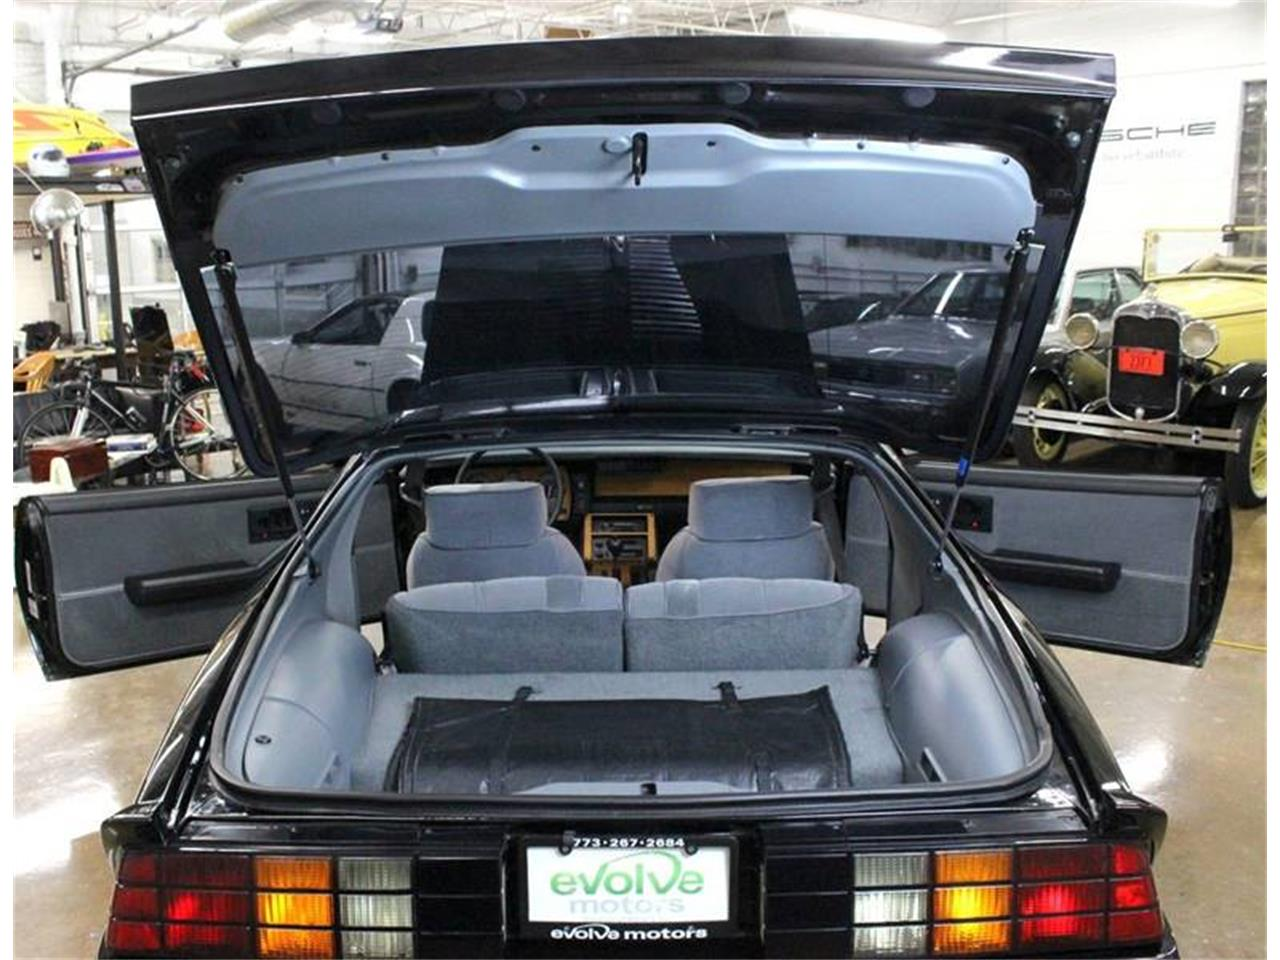 Large Picture of 1985 Chevrolet Camaro located in Chicago Illinois - $18,900.00 Offered by Evolve Motors - MB2C